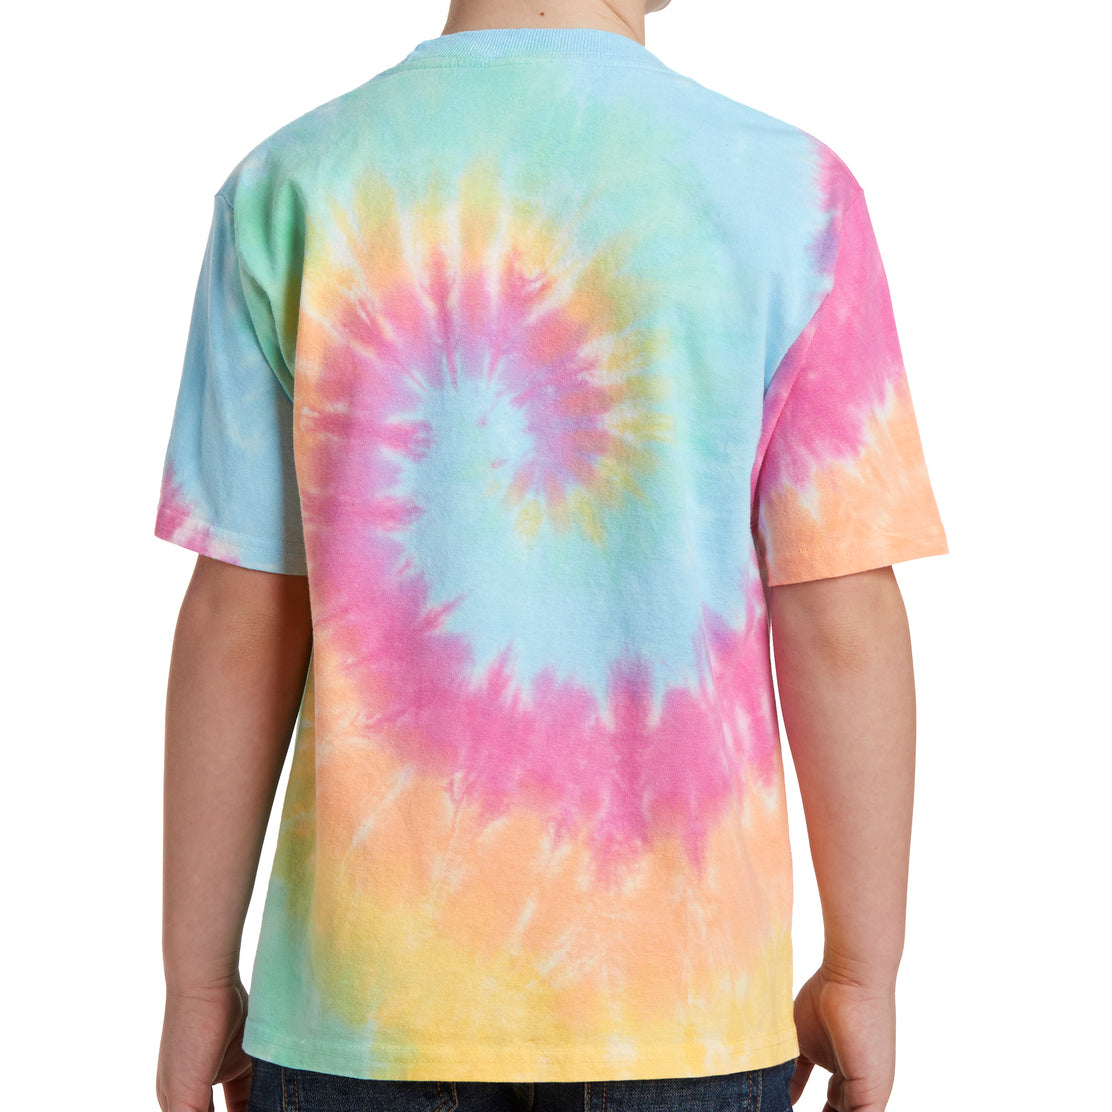 Youth Tie-Dye Tee - Pastel Rainbow